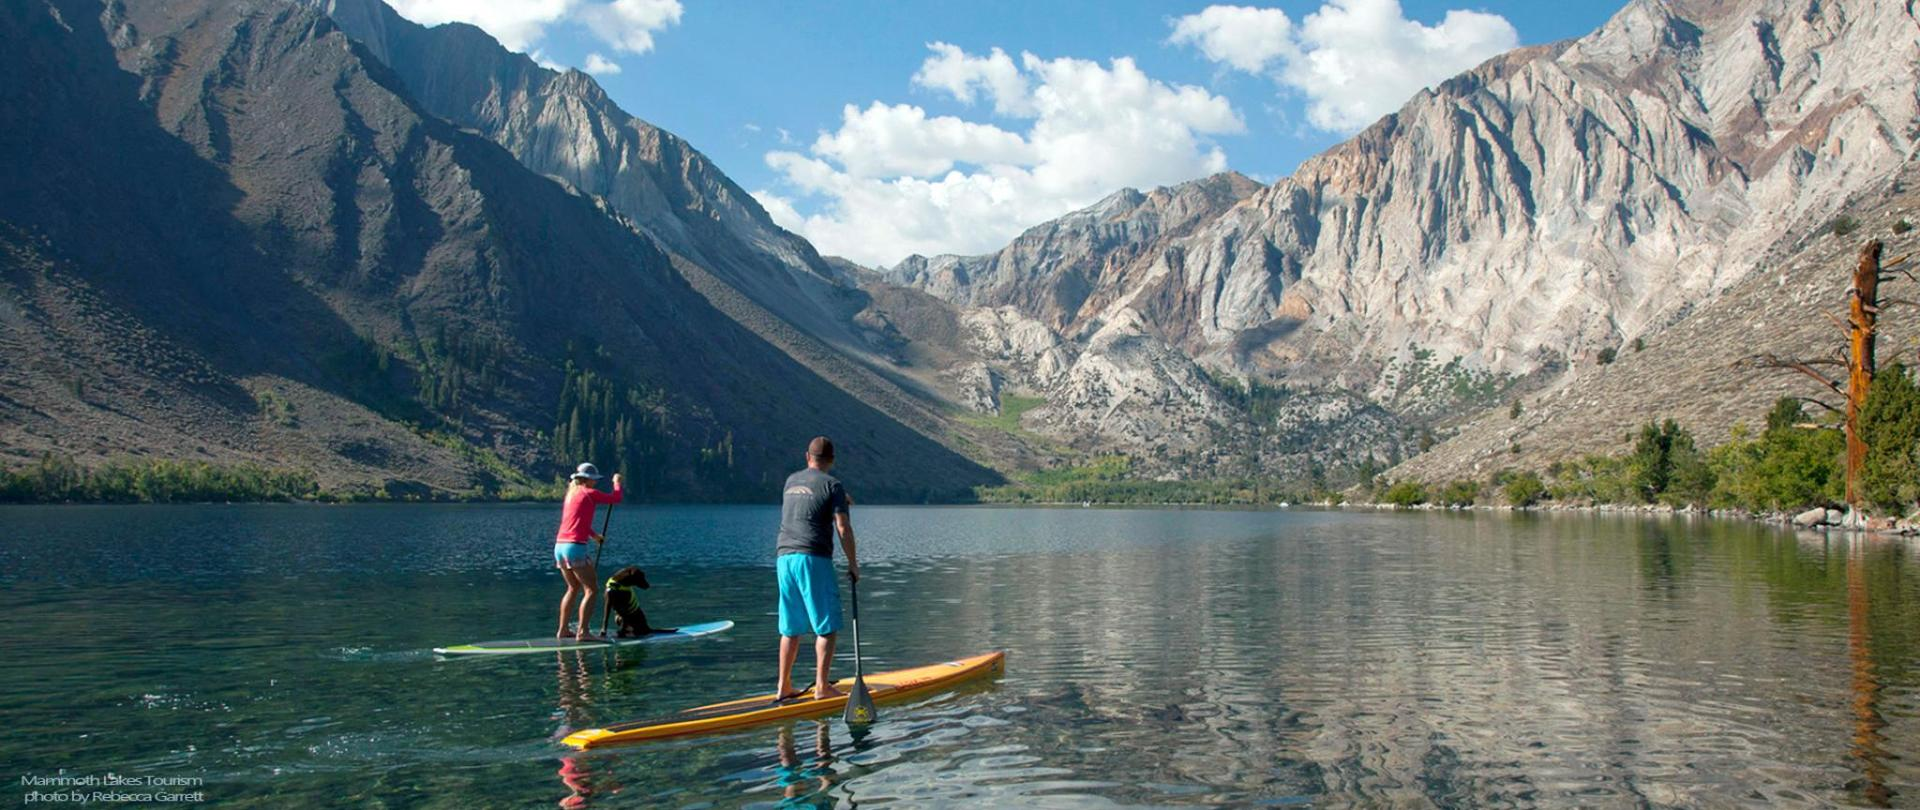 Summer Homepage Paddle boarding at Convict Lake 10 rev 2018 v2.jpg